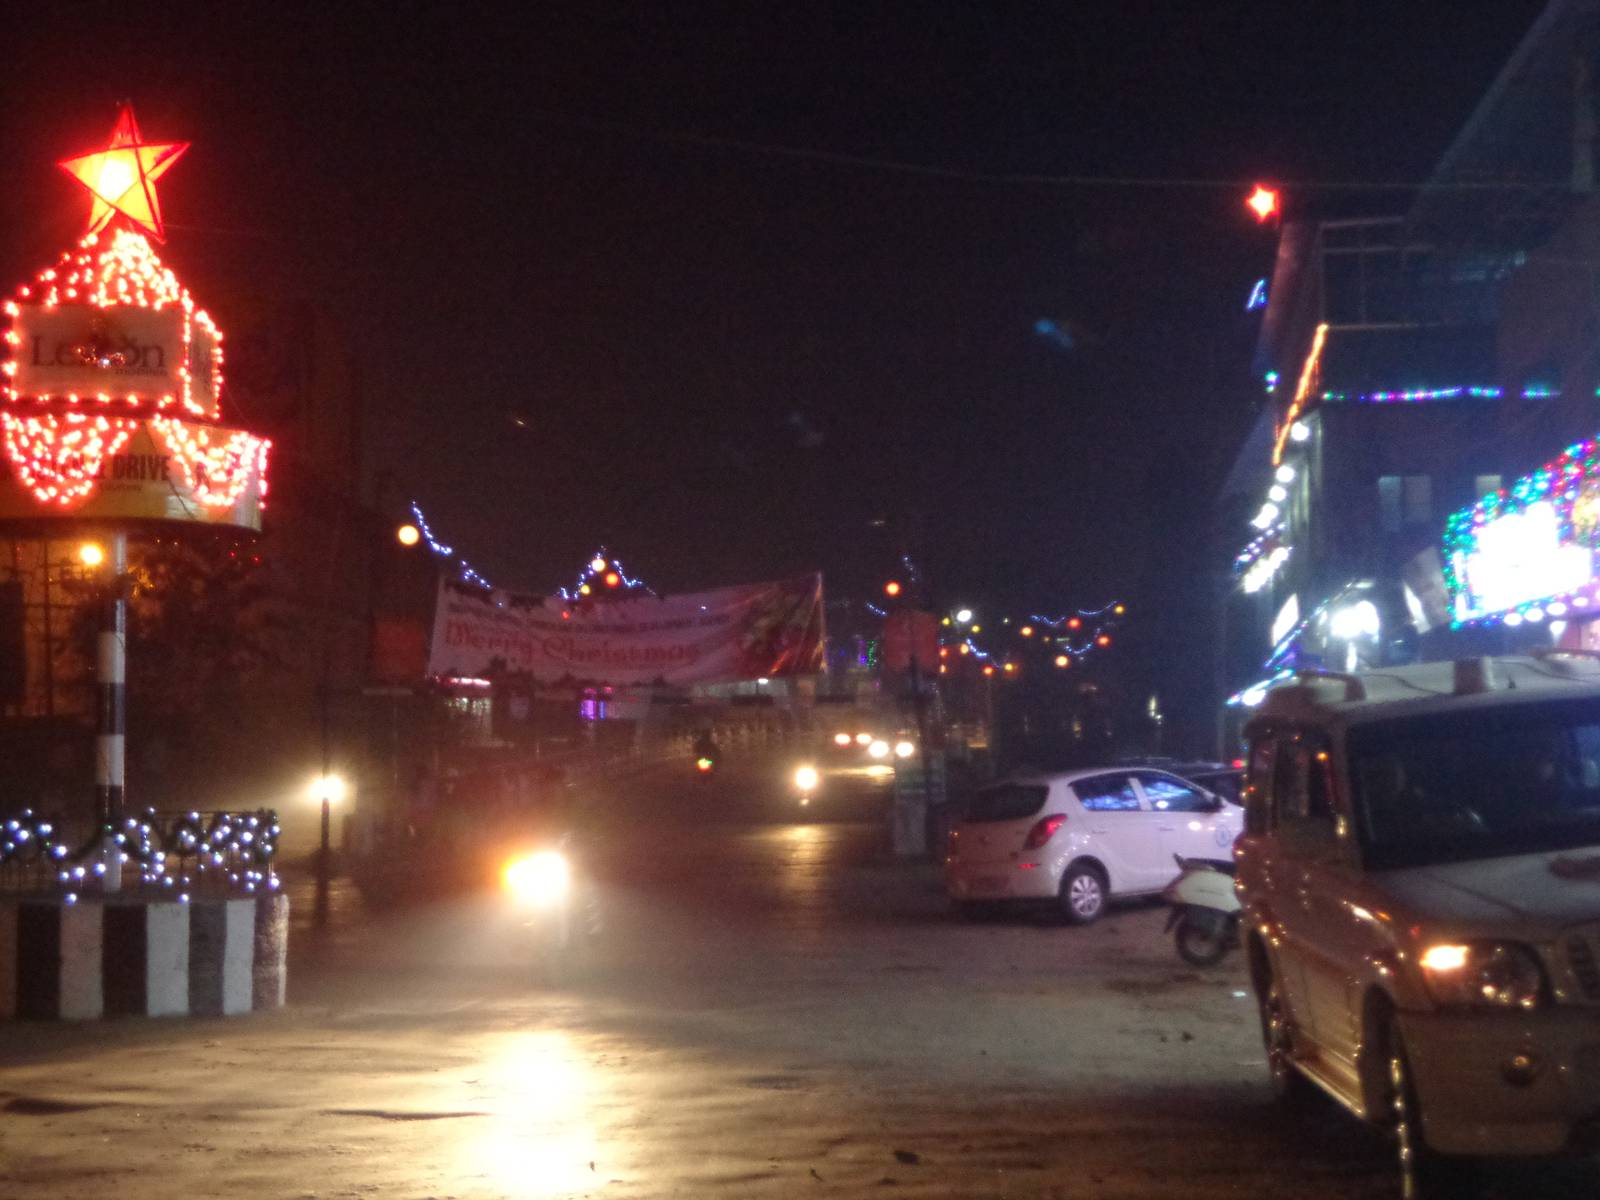 Dimapur has geared up for Christmas. Al the buildings have been decorated with  colourful LED bulbs.